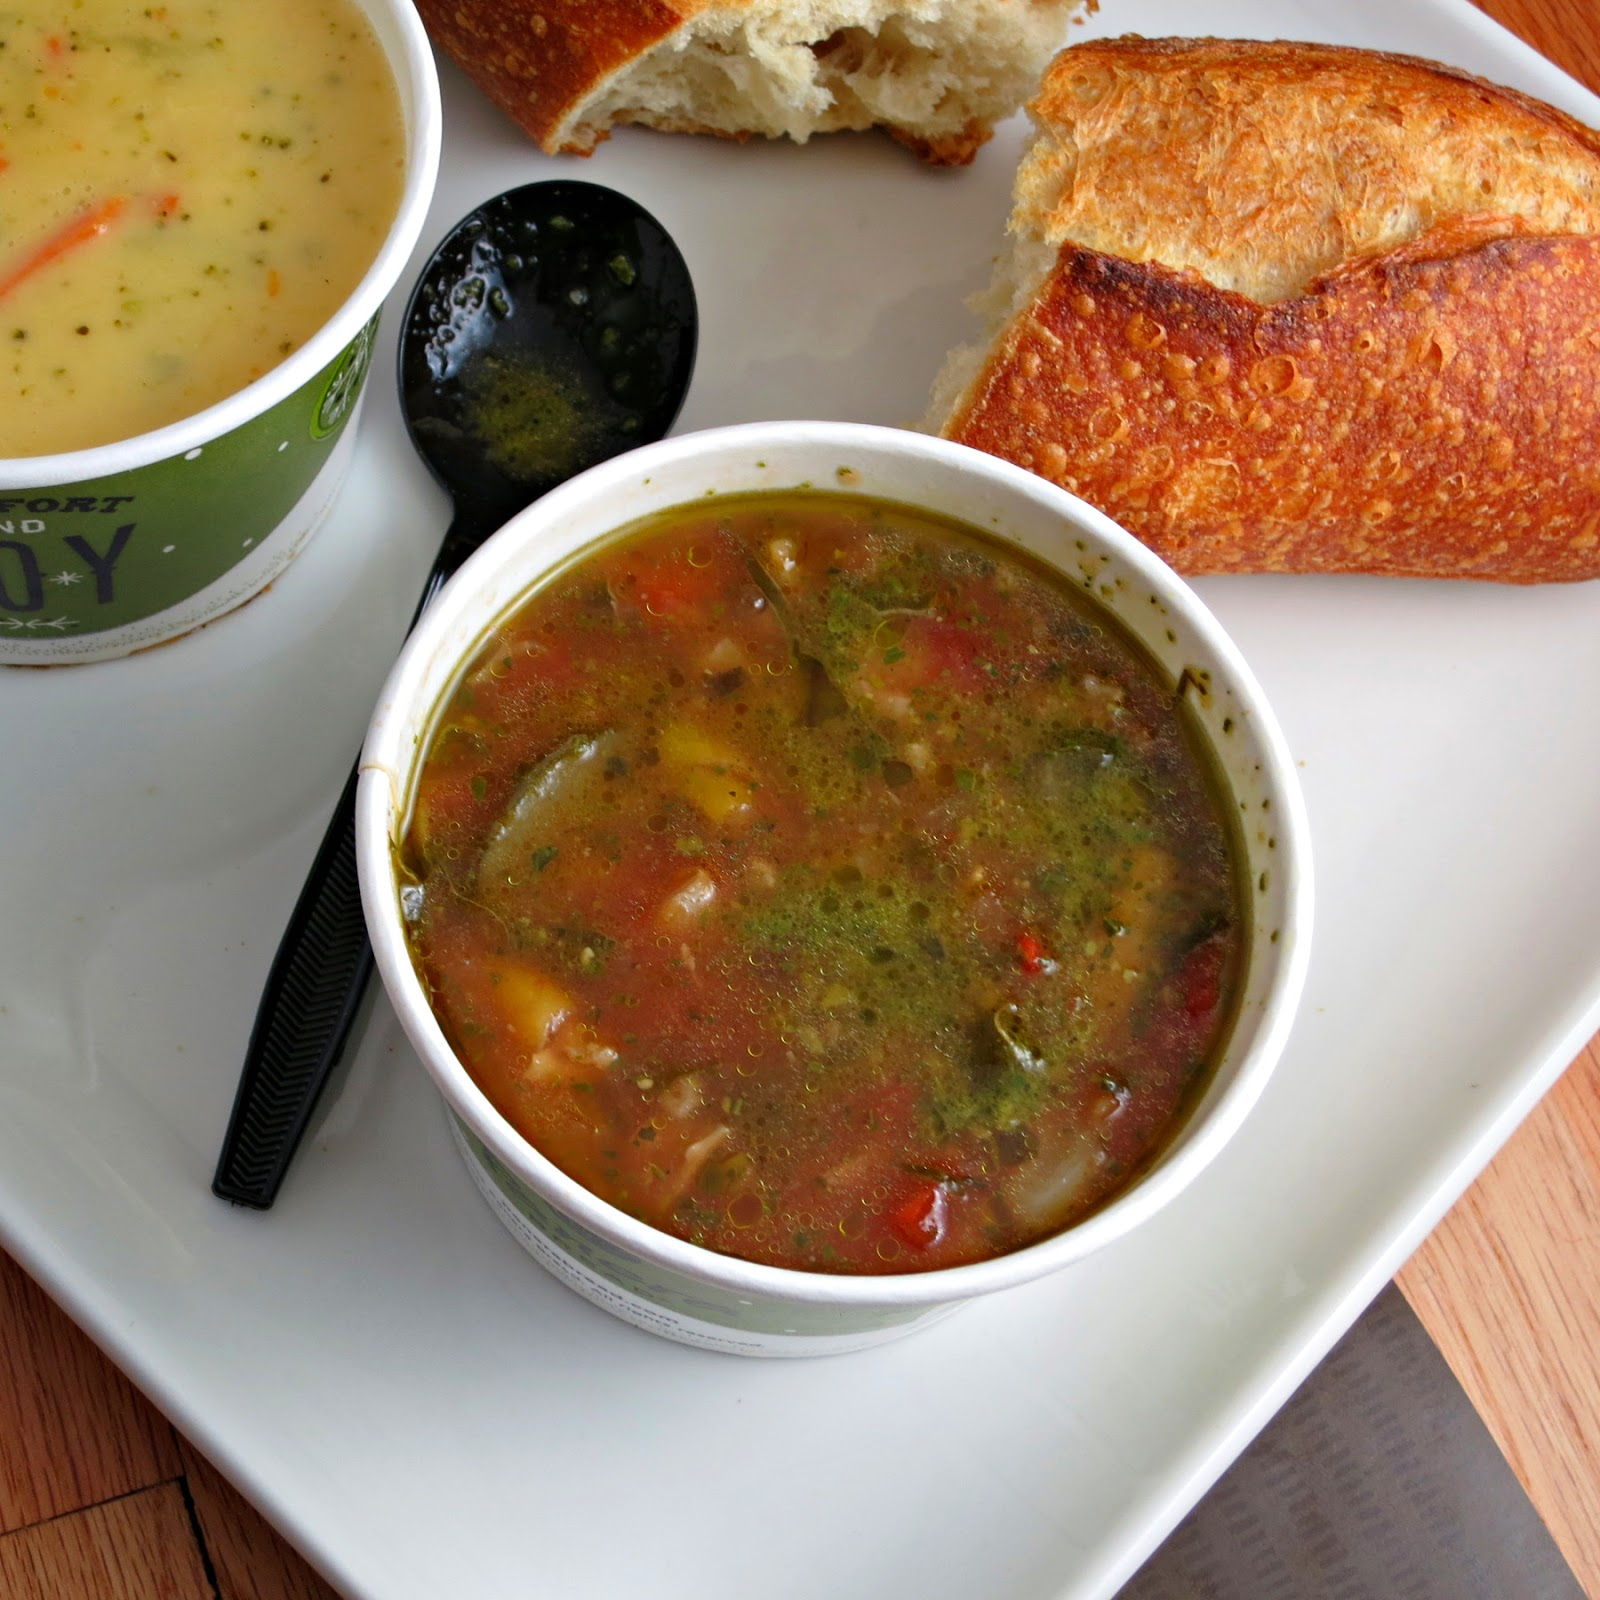 Charmant Hands Down My Favorite Soup Was The Garden Vegetable Pesto. So Many  Delicious Fresh Vegetables, Including Swiss Chard, Chunks Of Zucchini, And  Bell Peppers, ...